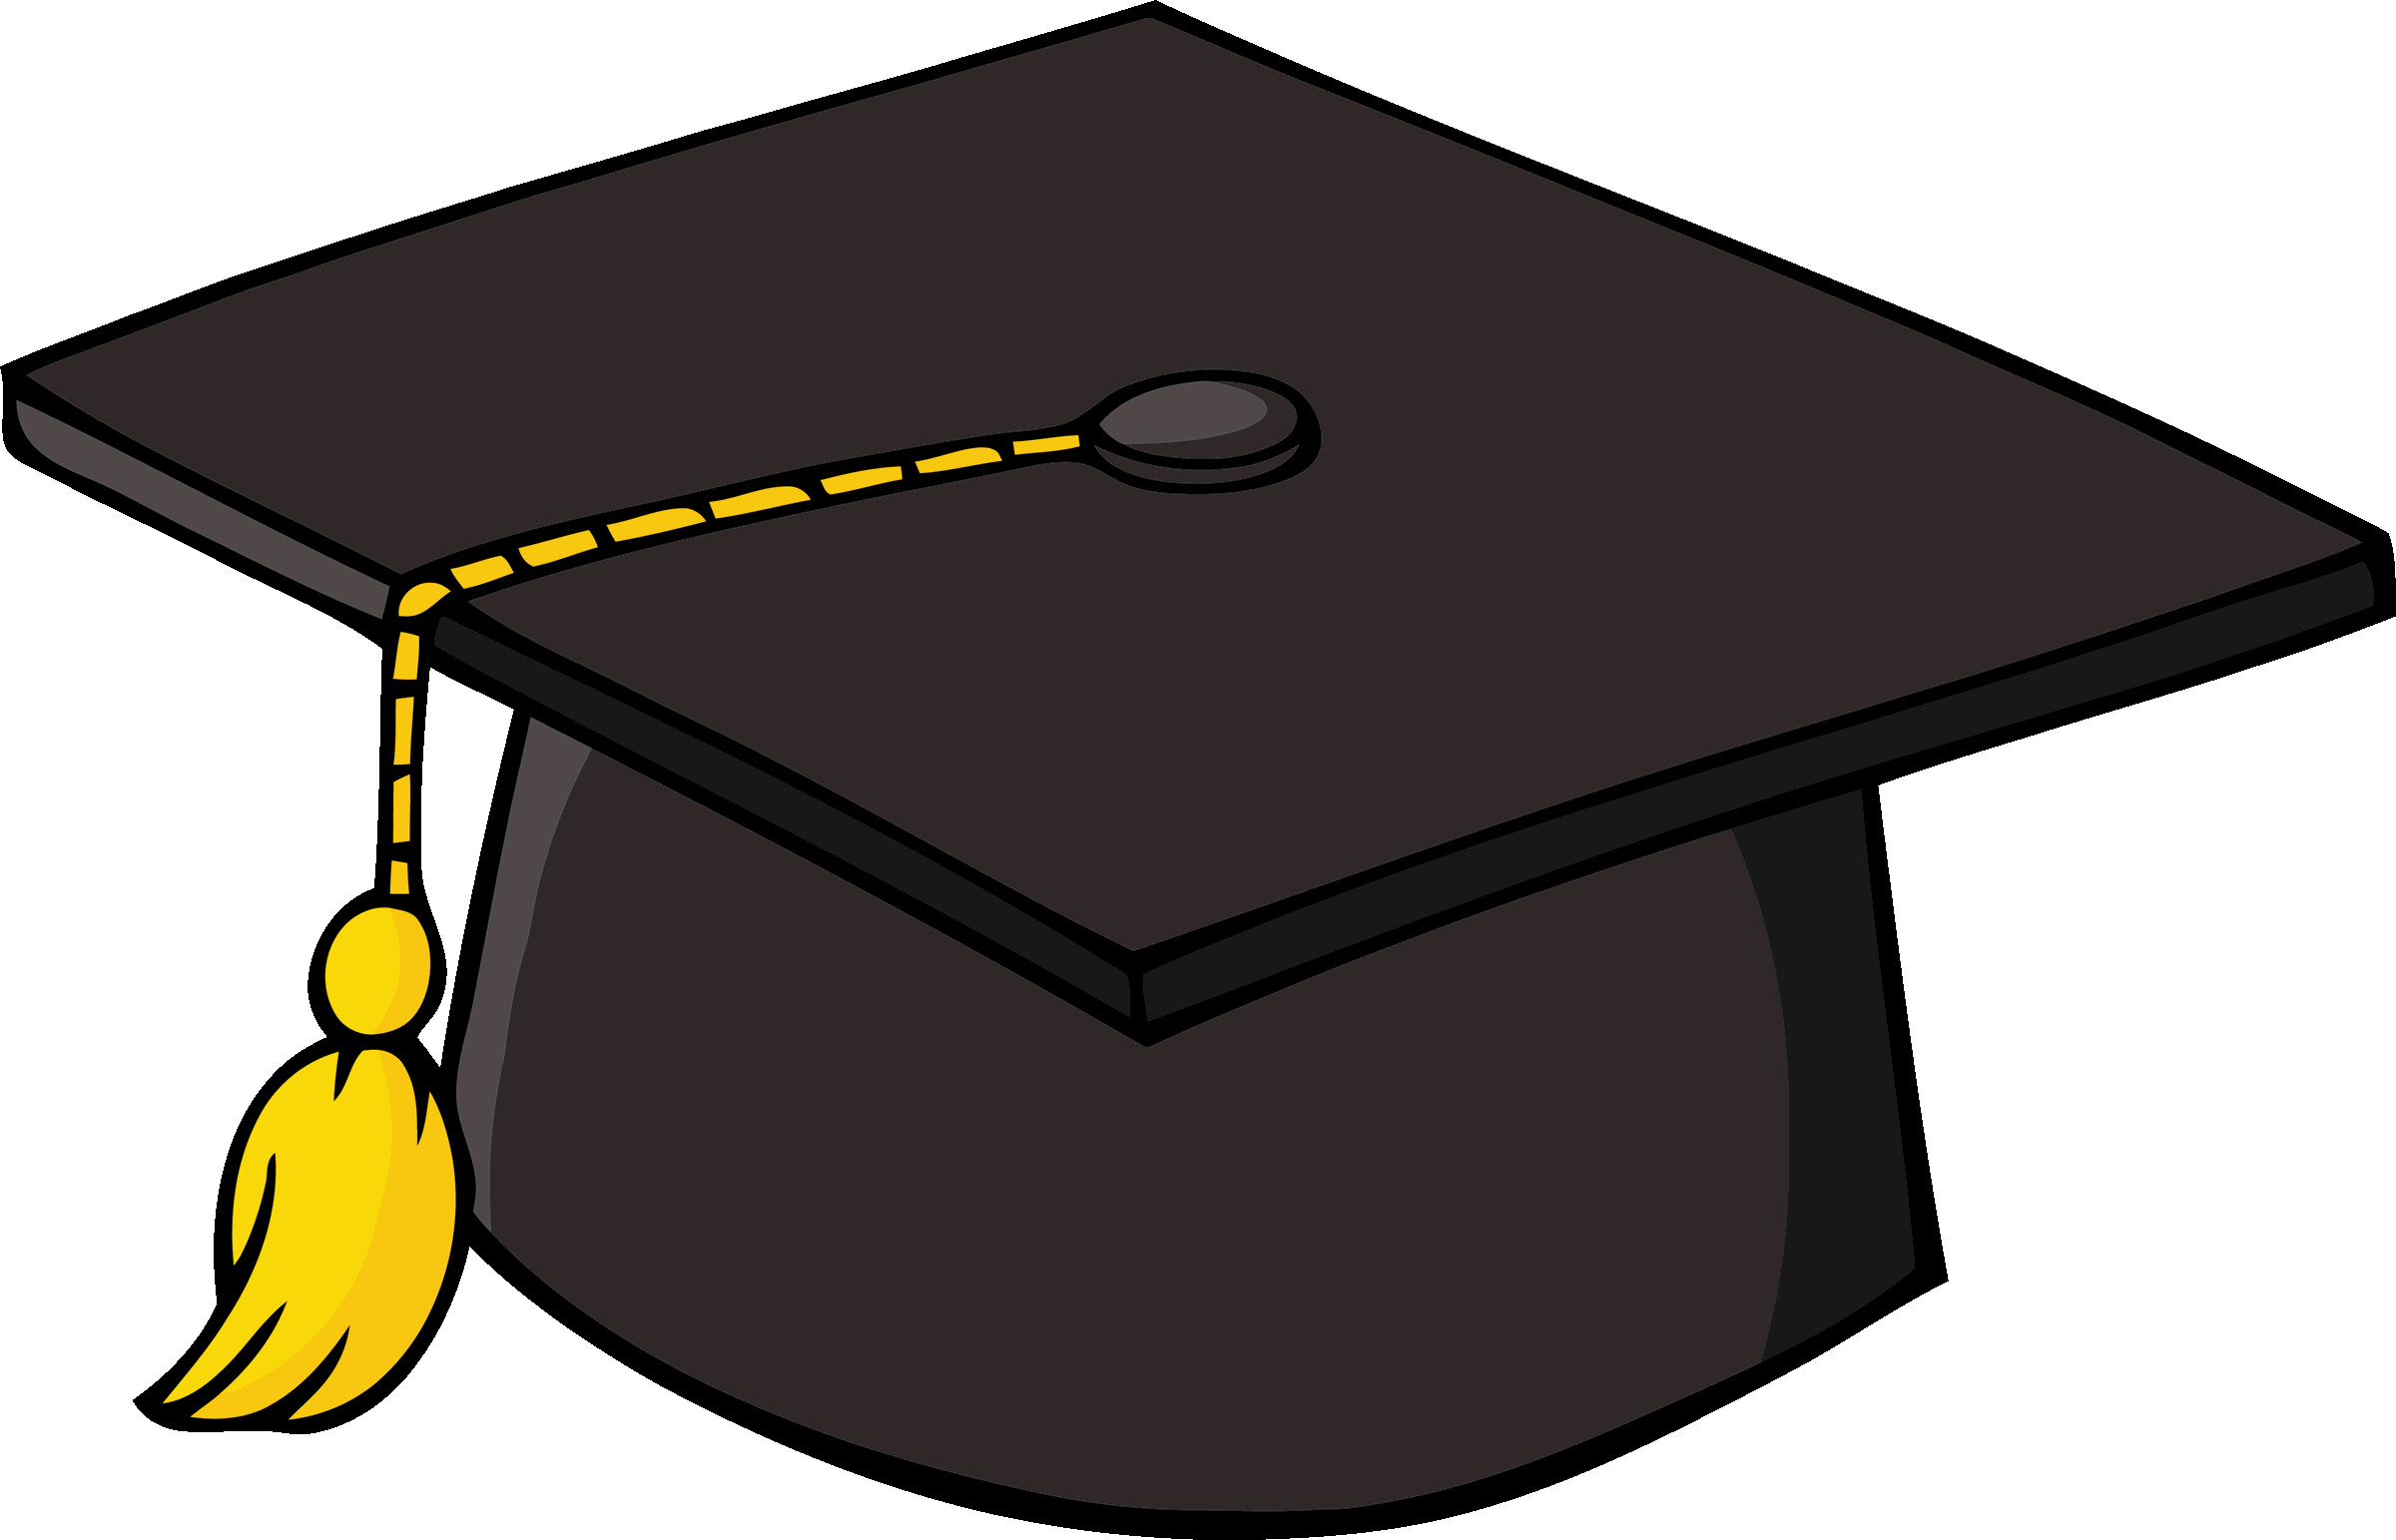 Hat clipart student. Graduate girl in graduating